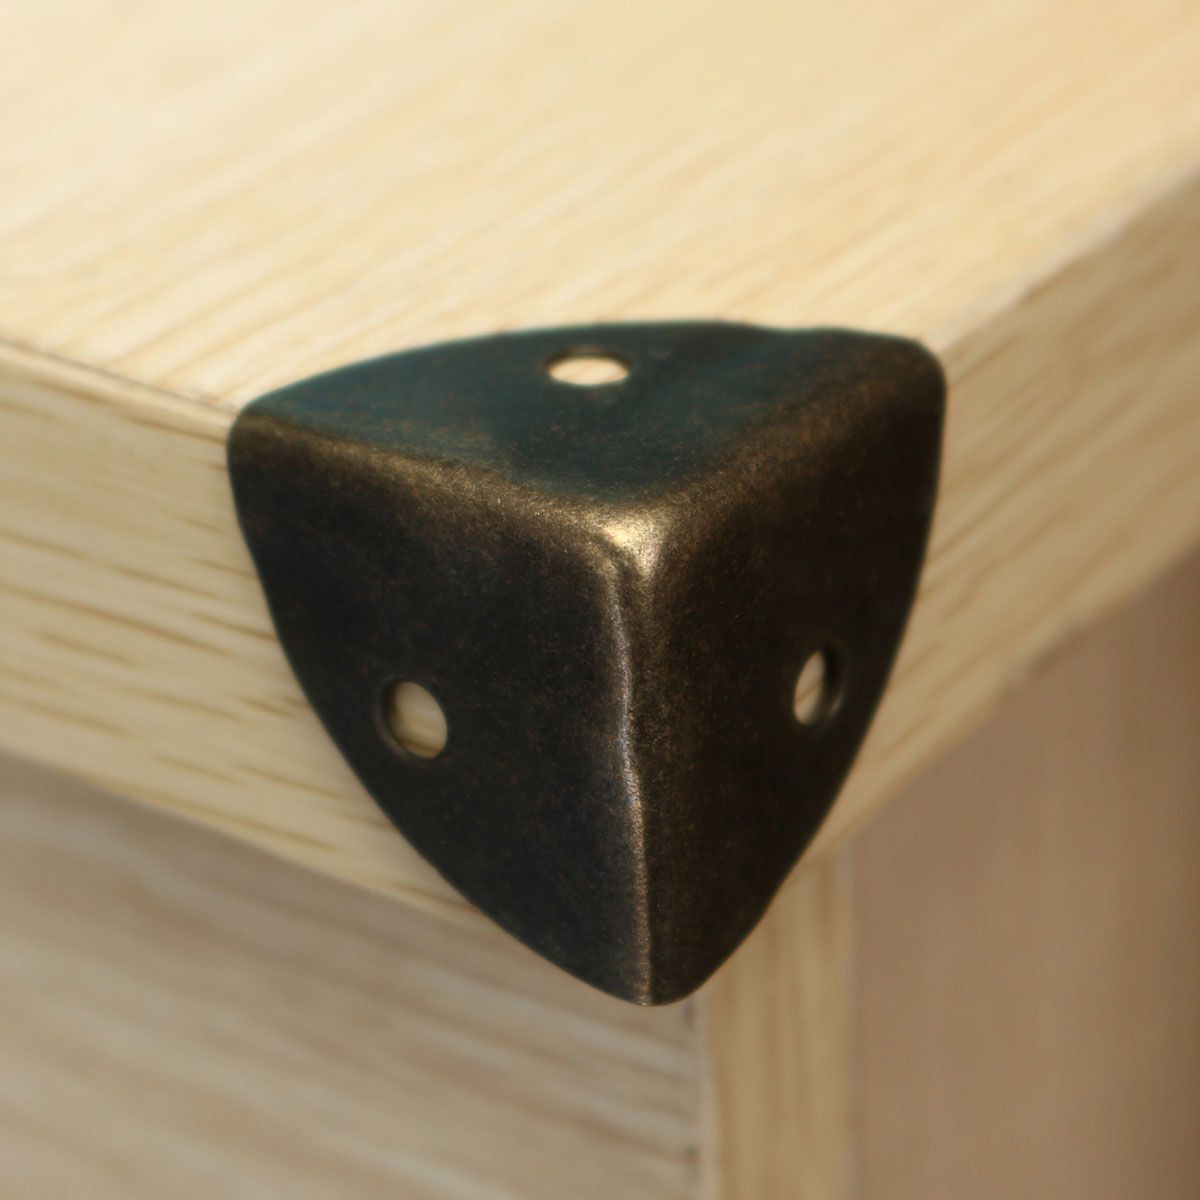 Etonnant Desk Corner Protector   Ideas To Decorate Desk Check More At Http://www